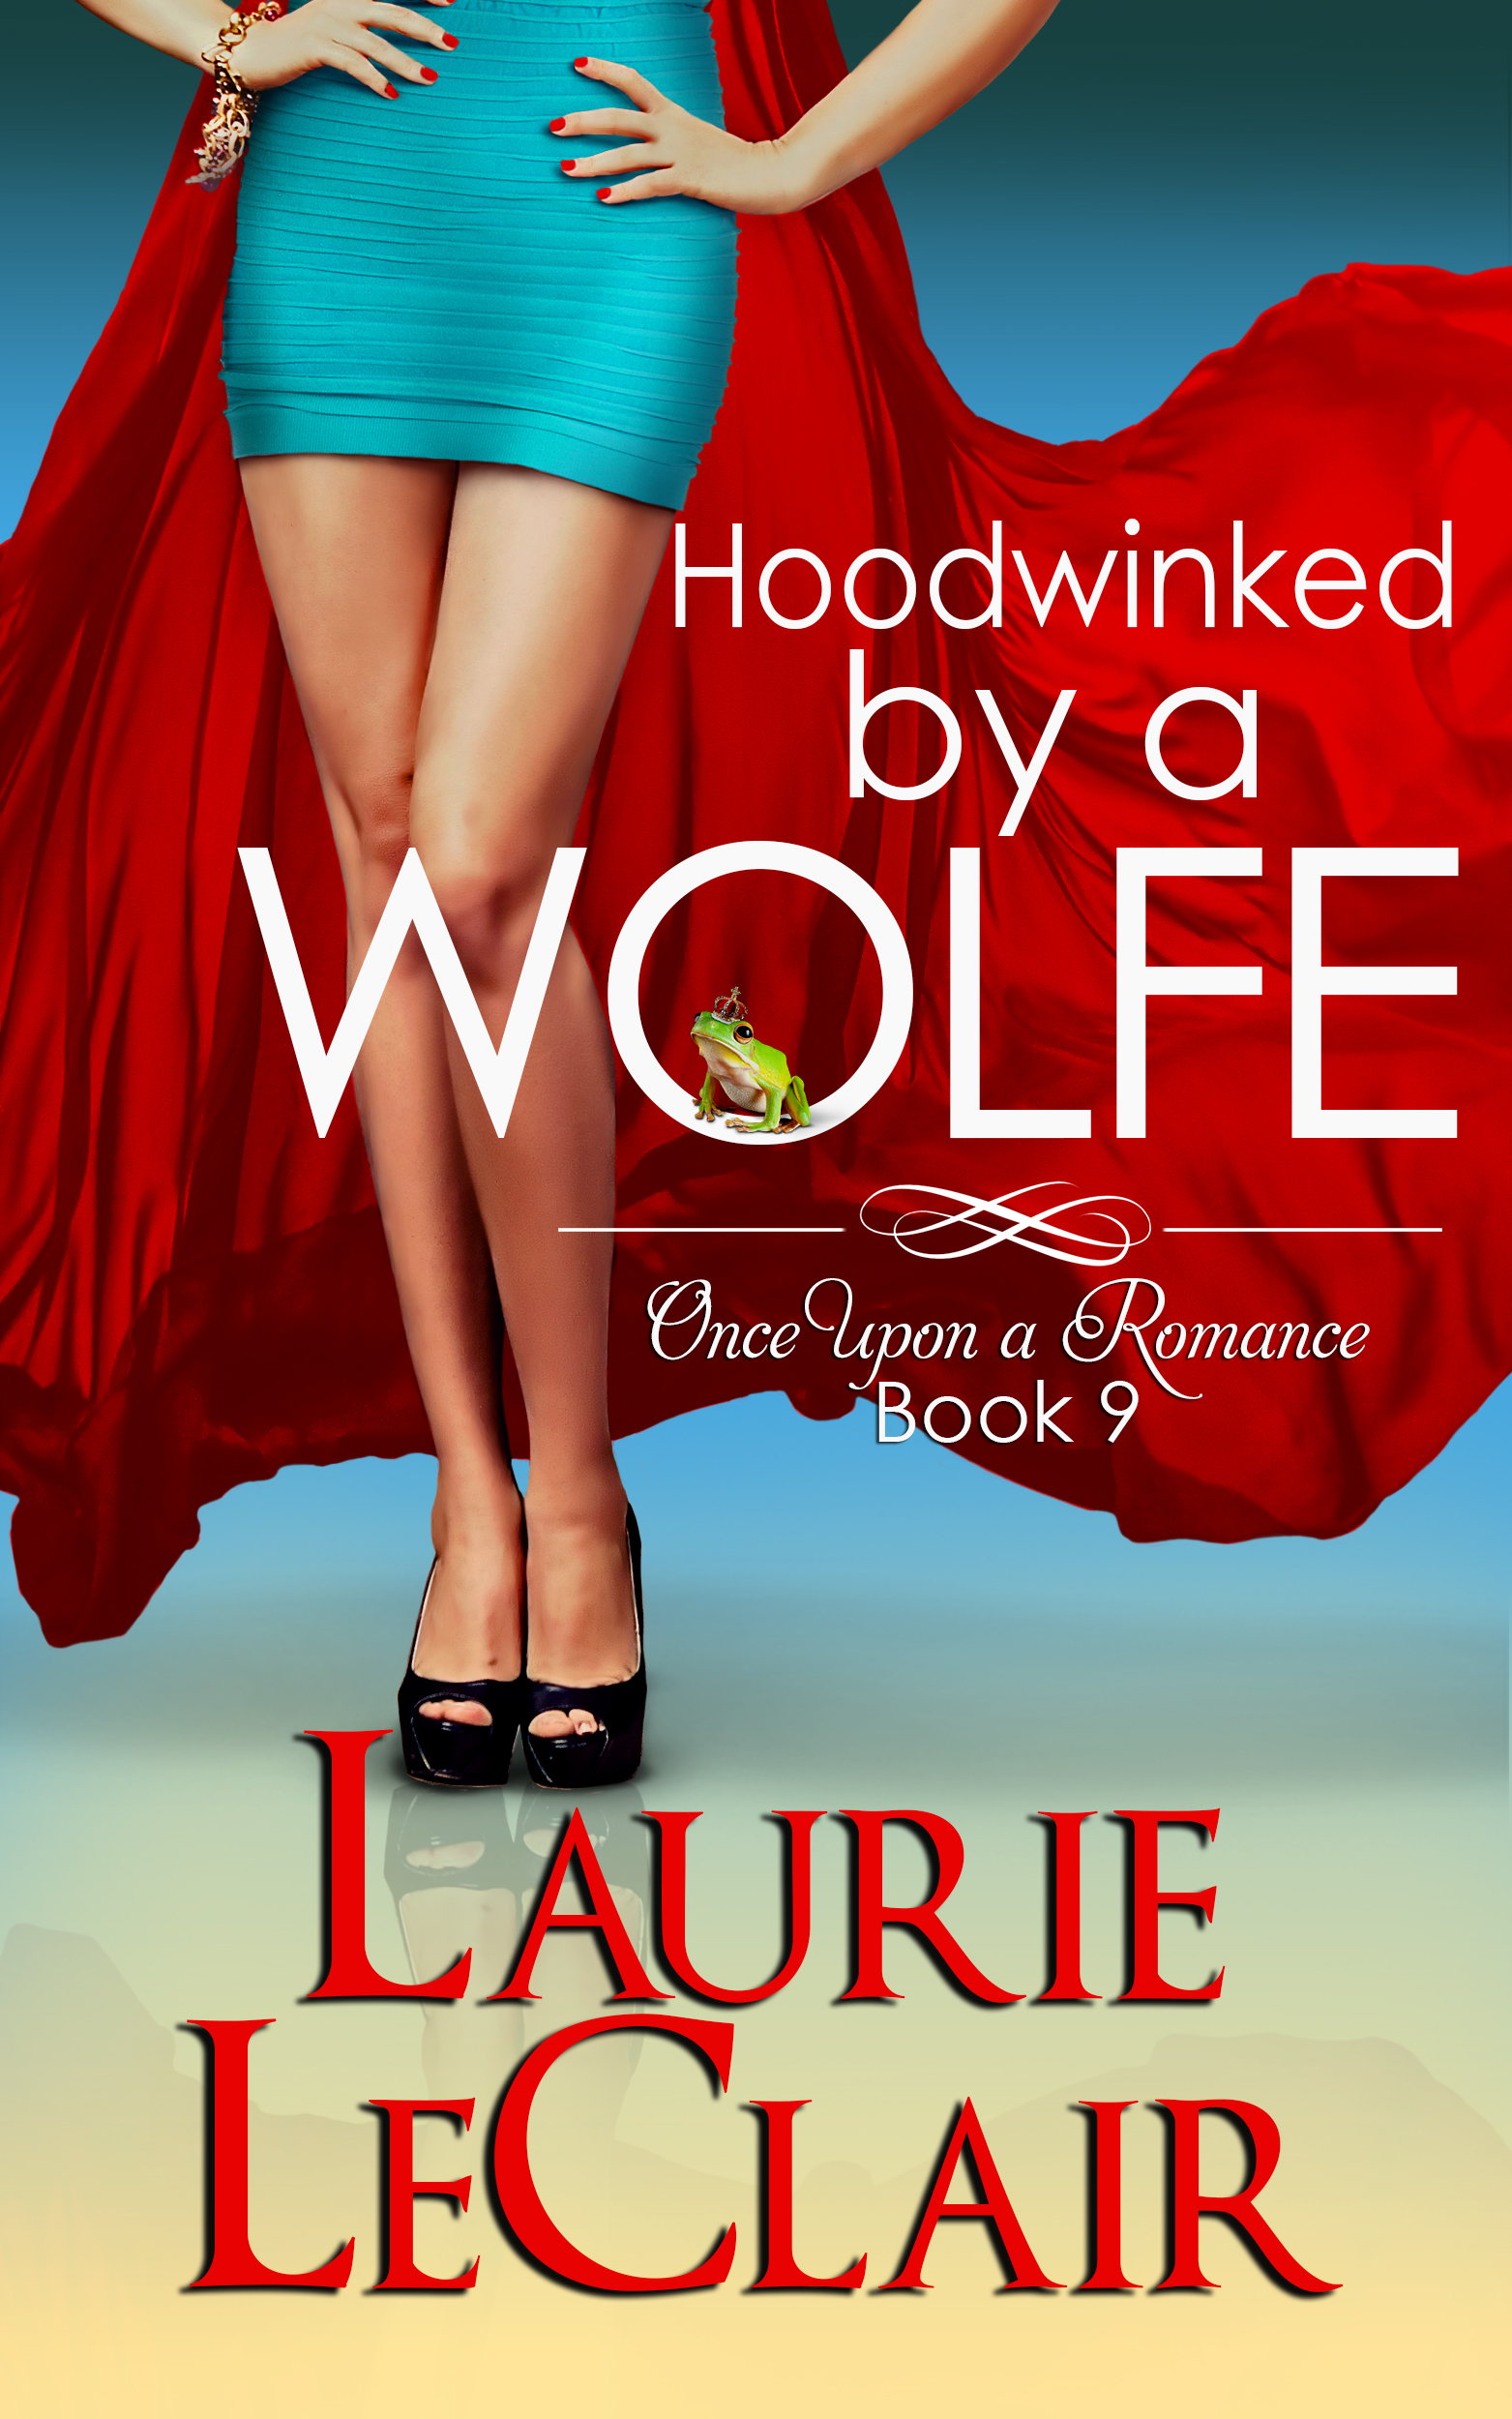 Hoodwinked By A Wolfe by Laurie LeClair